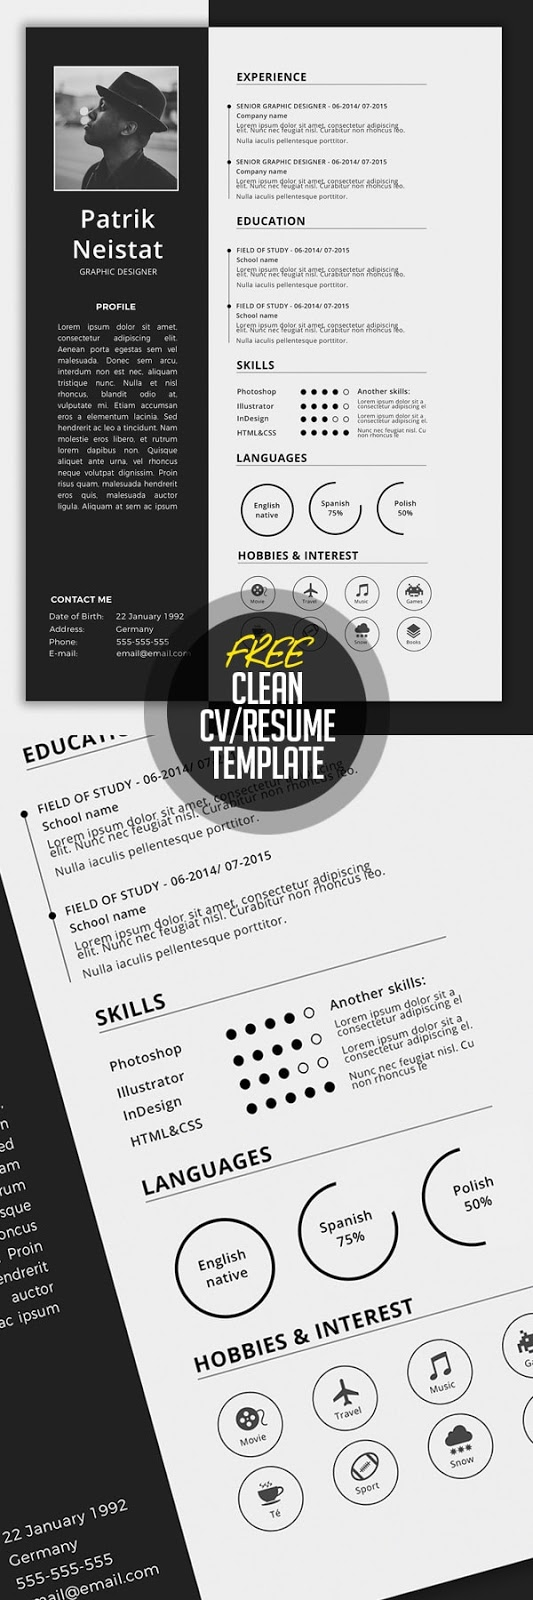 Download 30 template resume cv terbaru dan terbaik 2017 format simple cvresume template free download yelopaper Choice Image